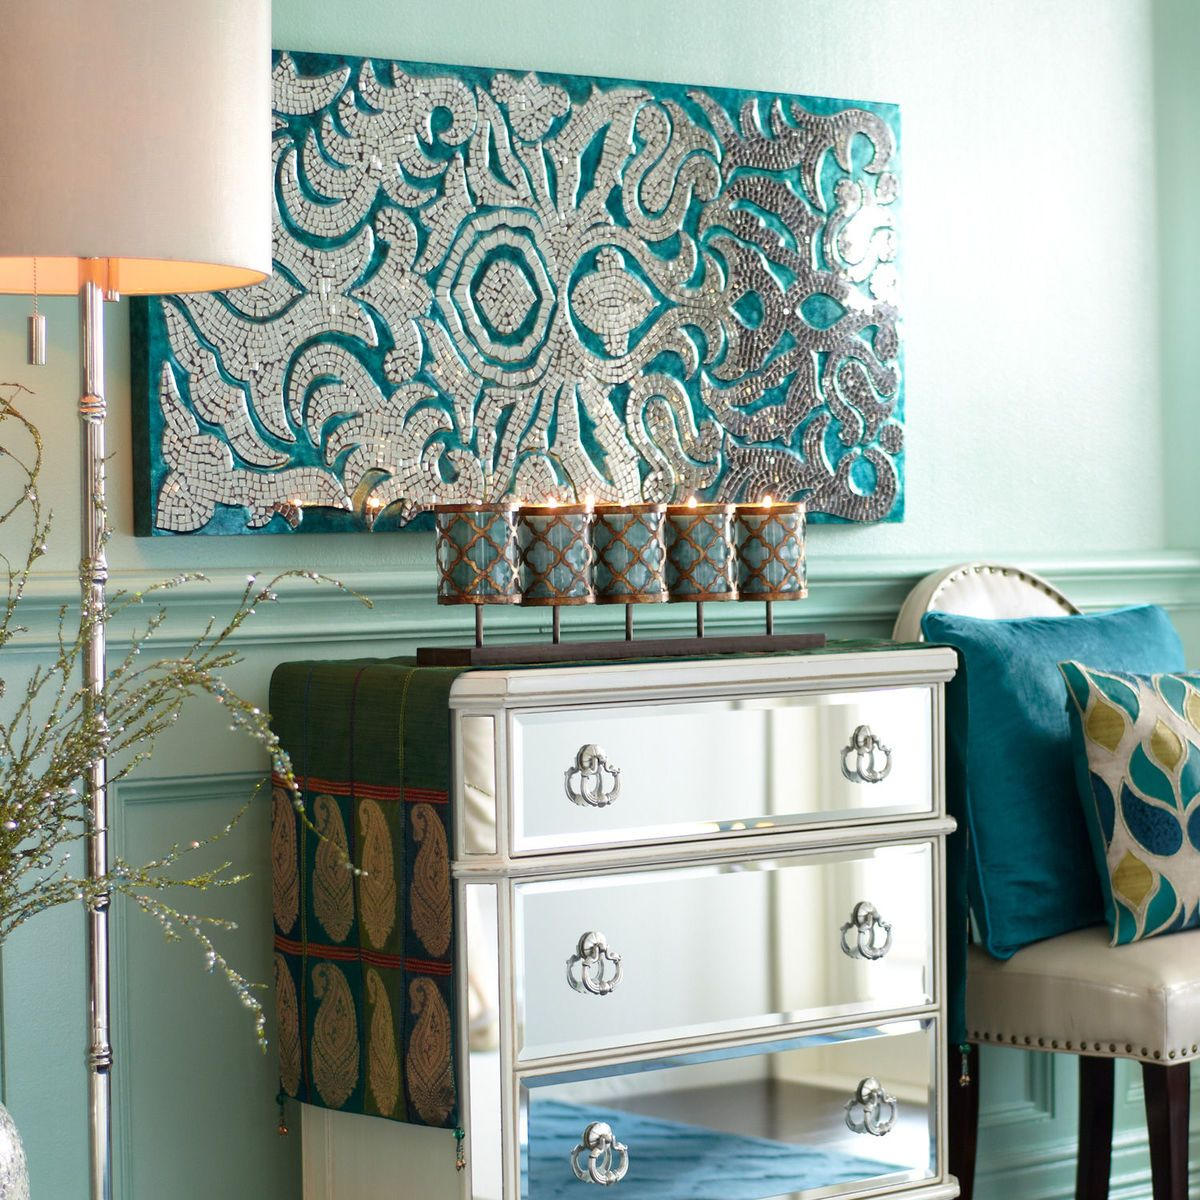 Mirrored Damask Panel - Teal | Pier 1 Imports 89 spa room | jacuzzi ...